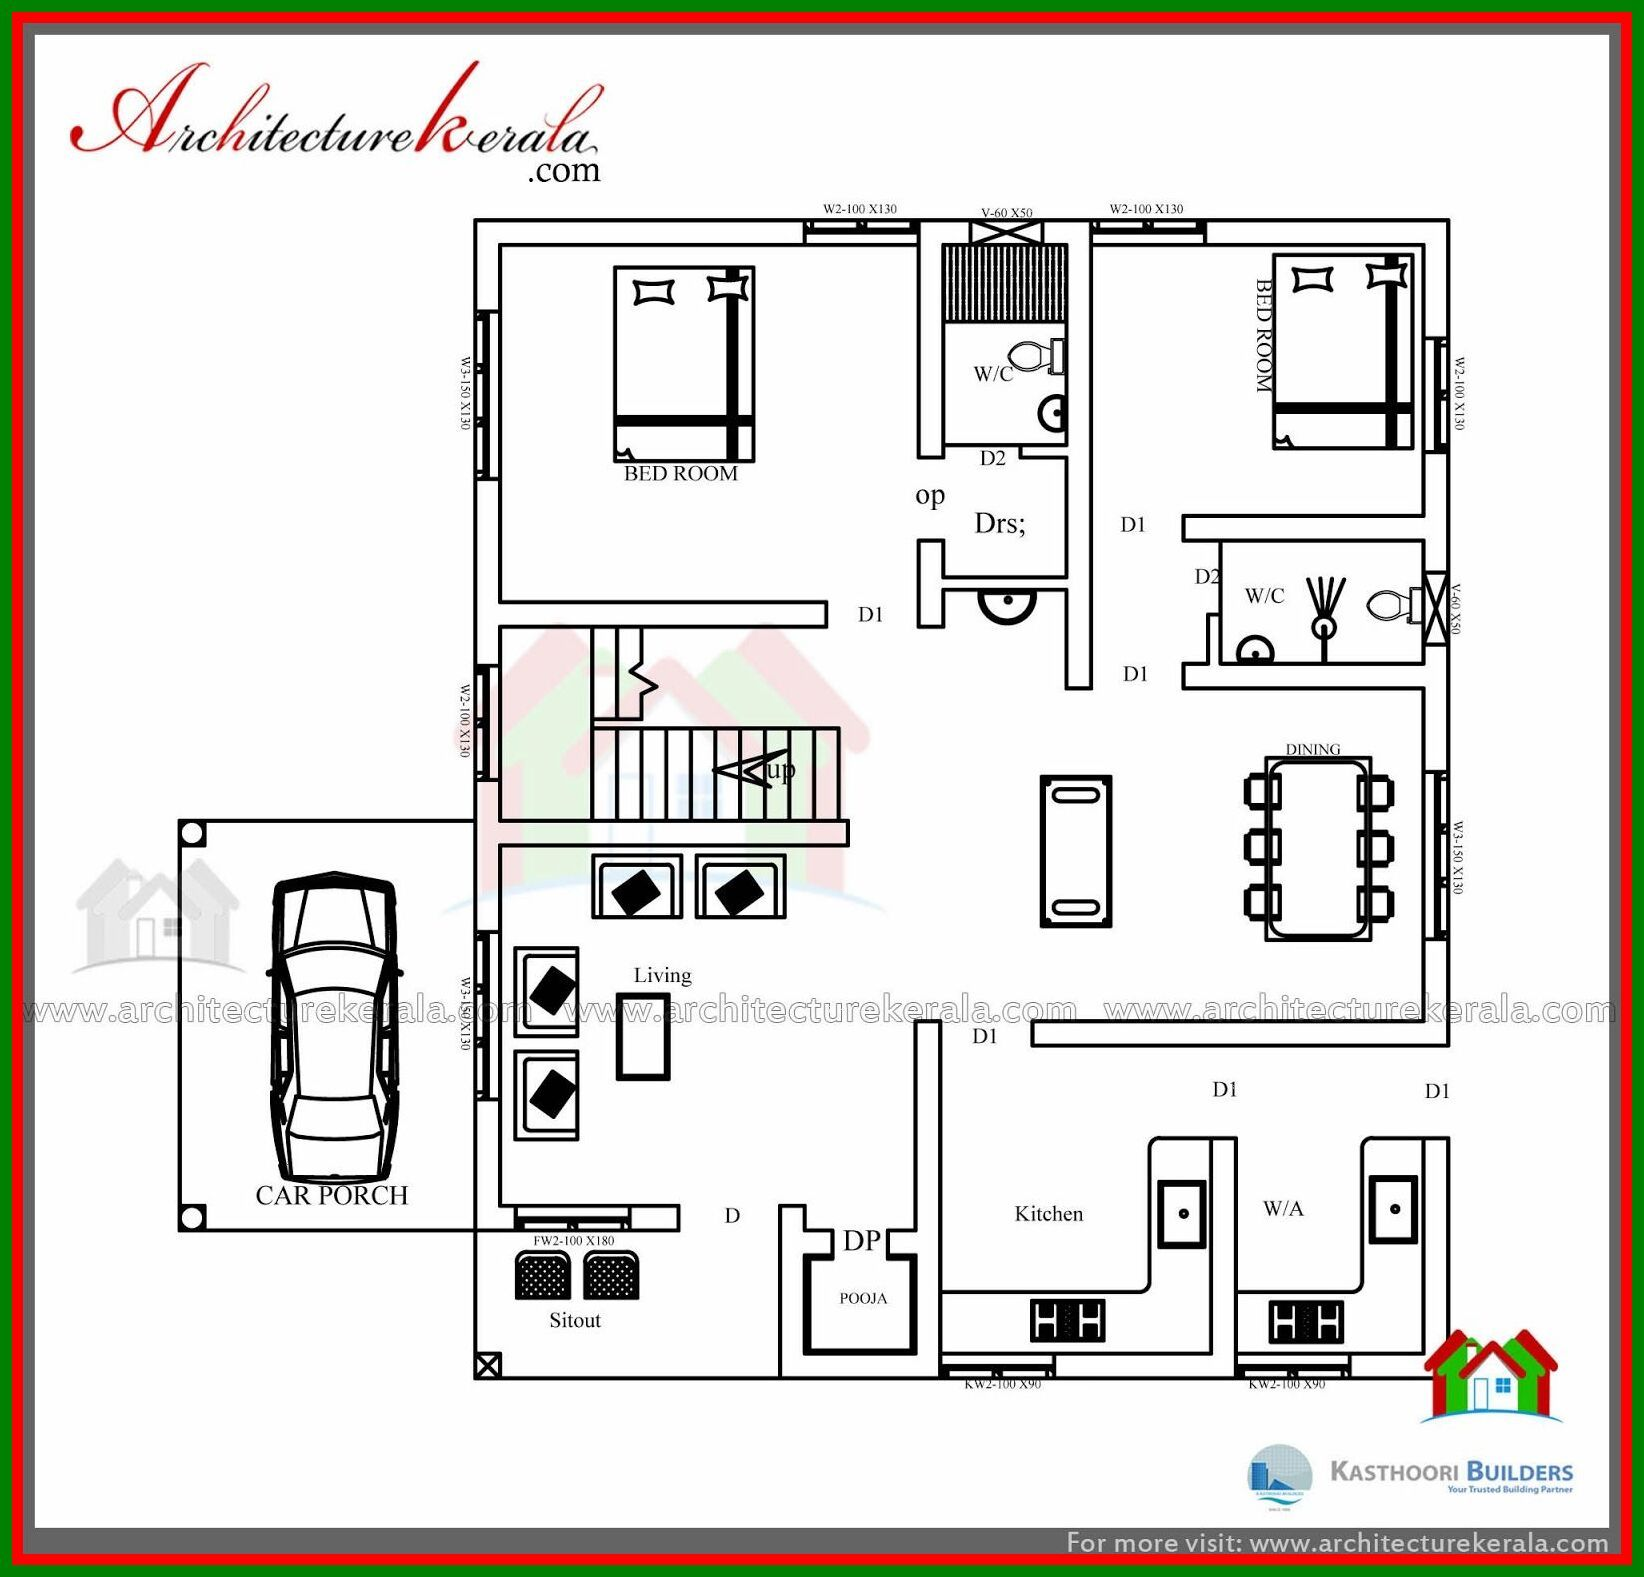 56 Reference Of Ground Floor Bedroom House Low Cost House Plans Bedroom Floor Plans Bedroom House Plans